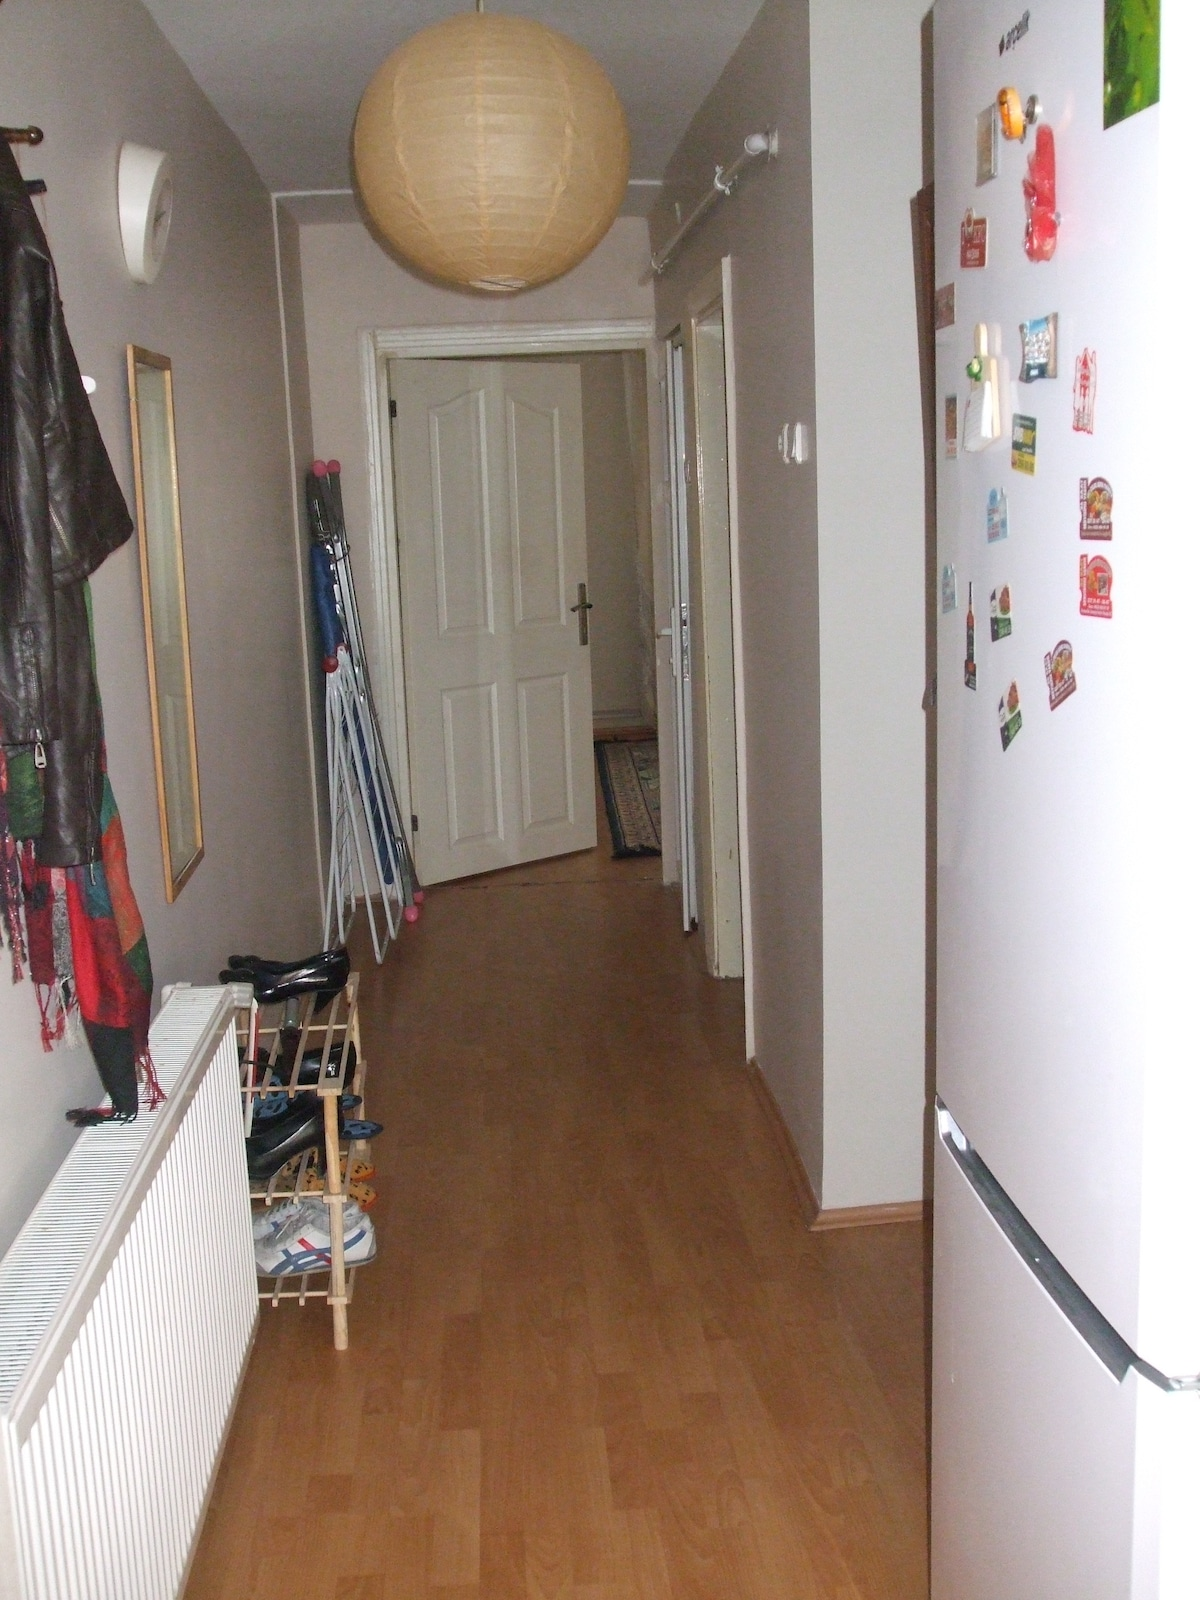 The hallway from opposite direction, fridge is in hallway. Guests are free to use it.